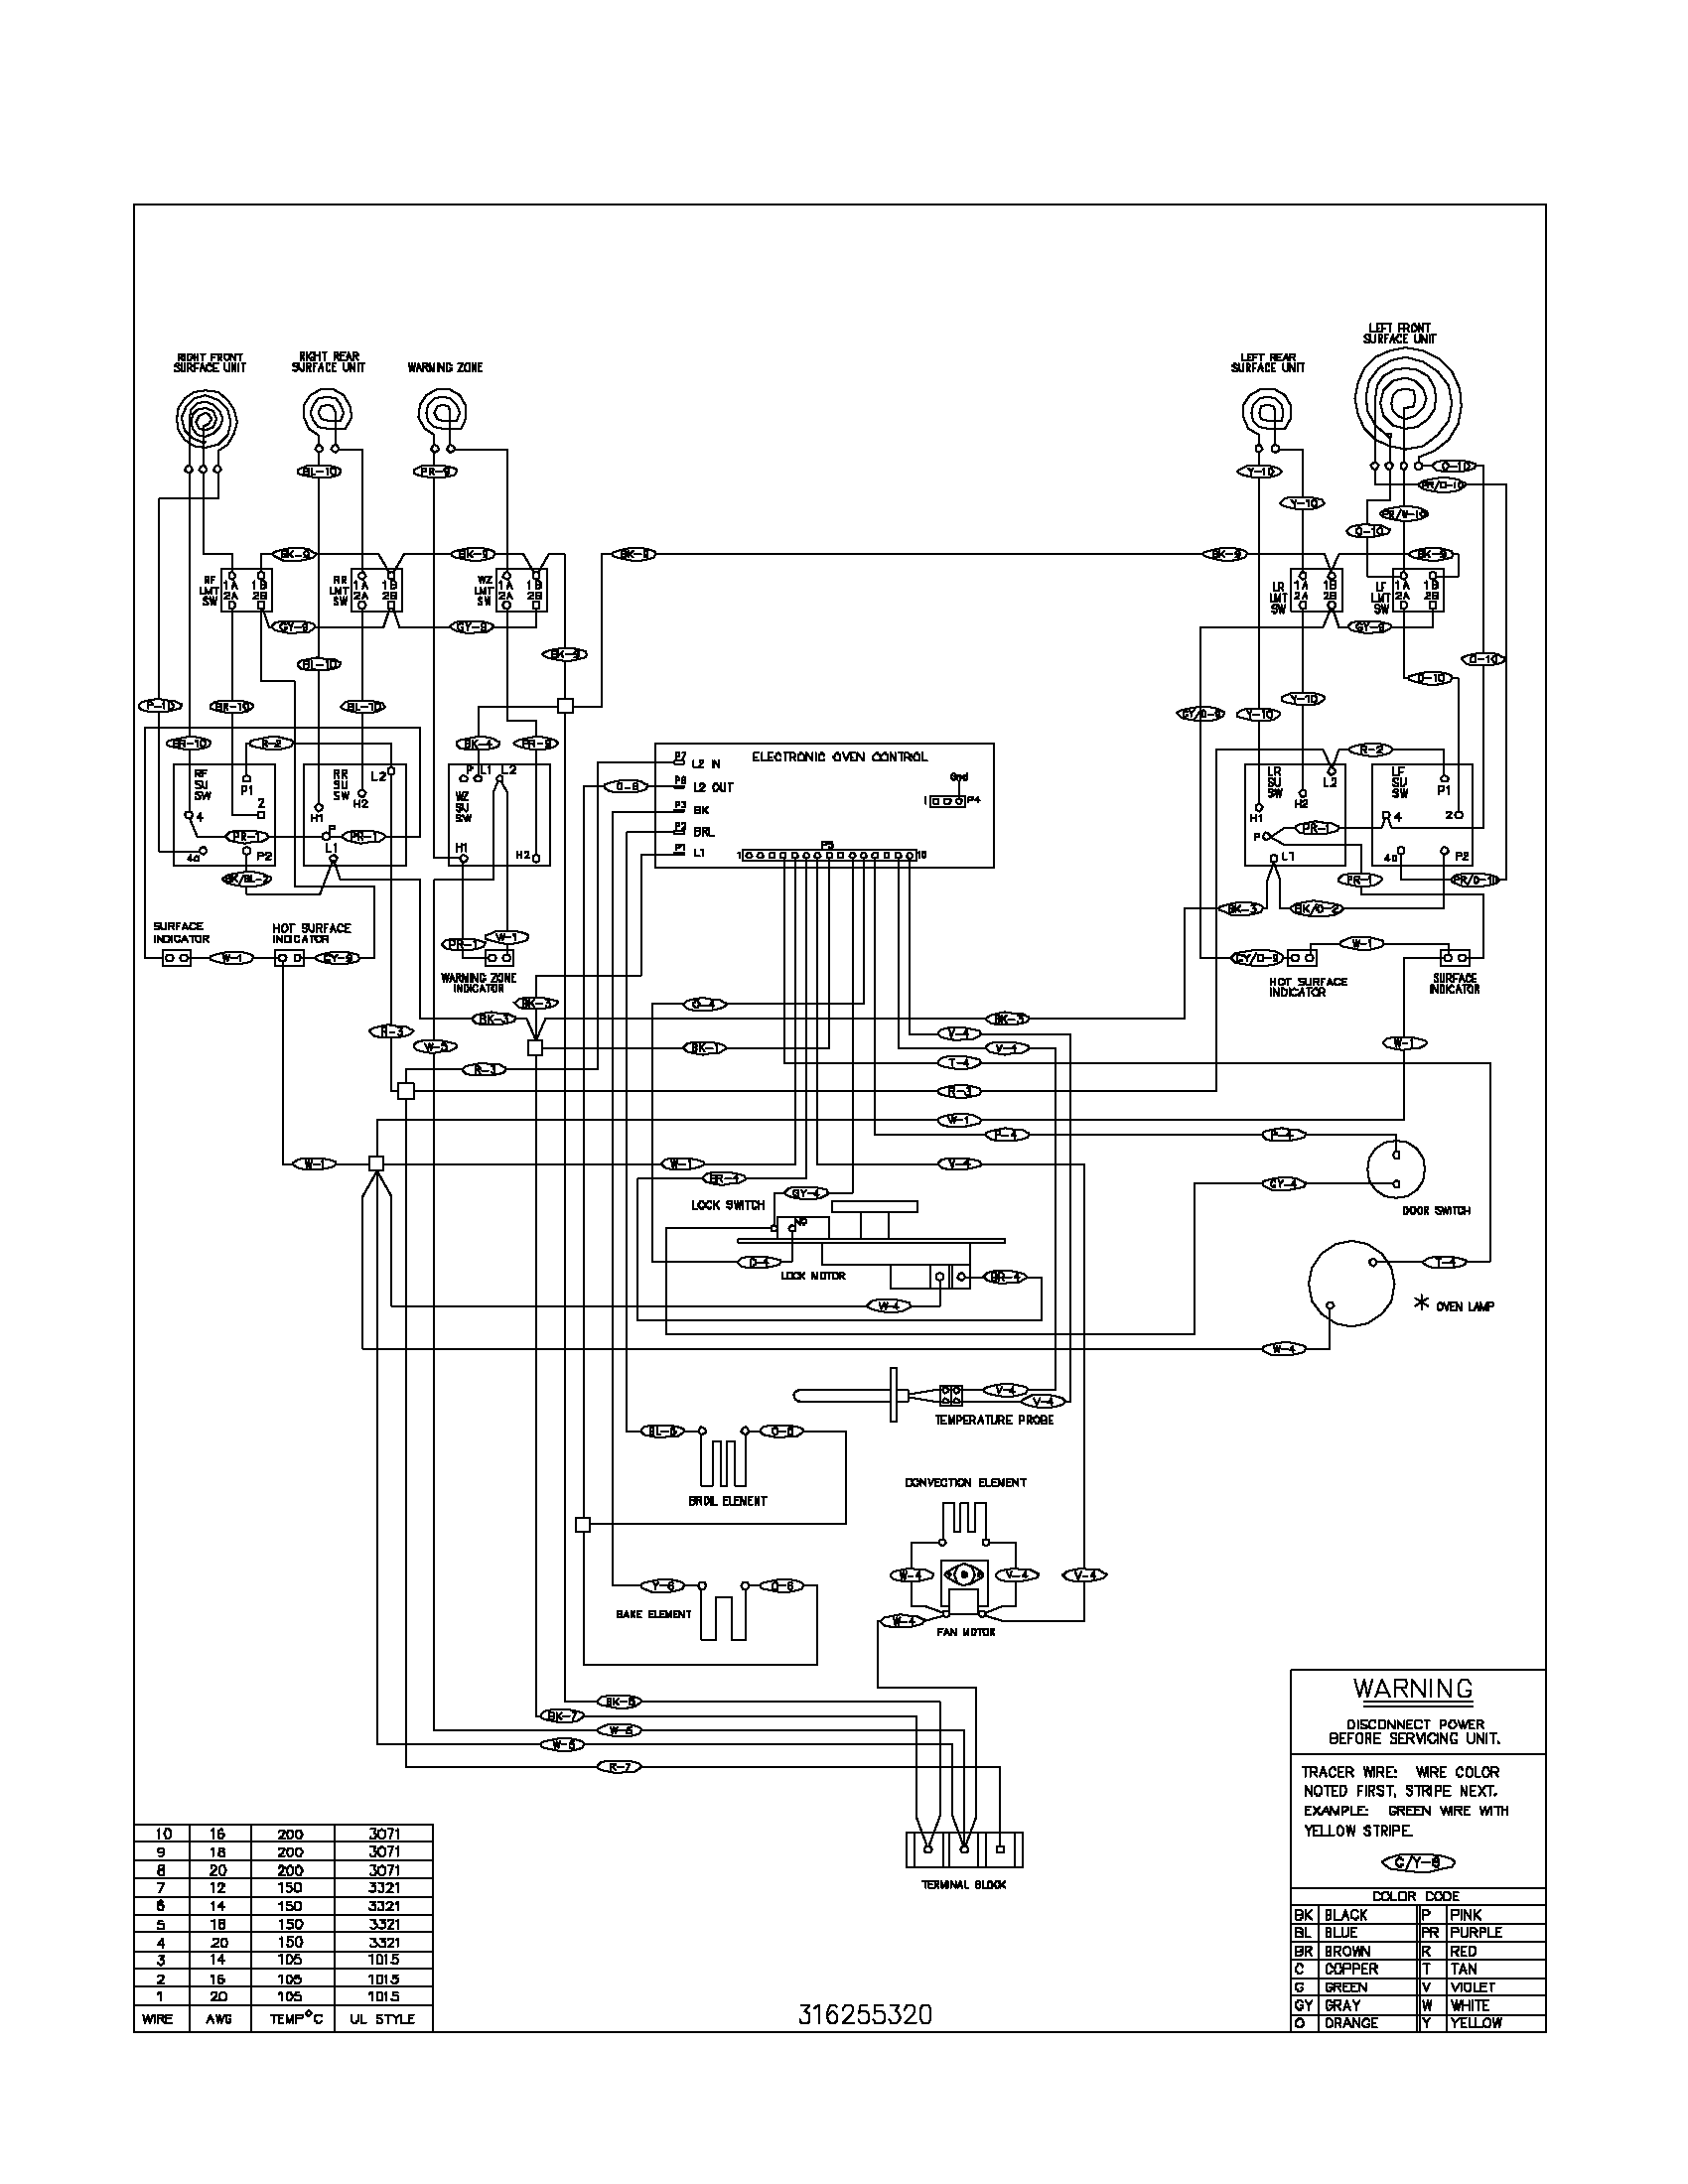 electric range wiring diagram electric range wiring diagram